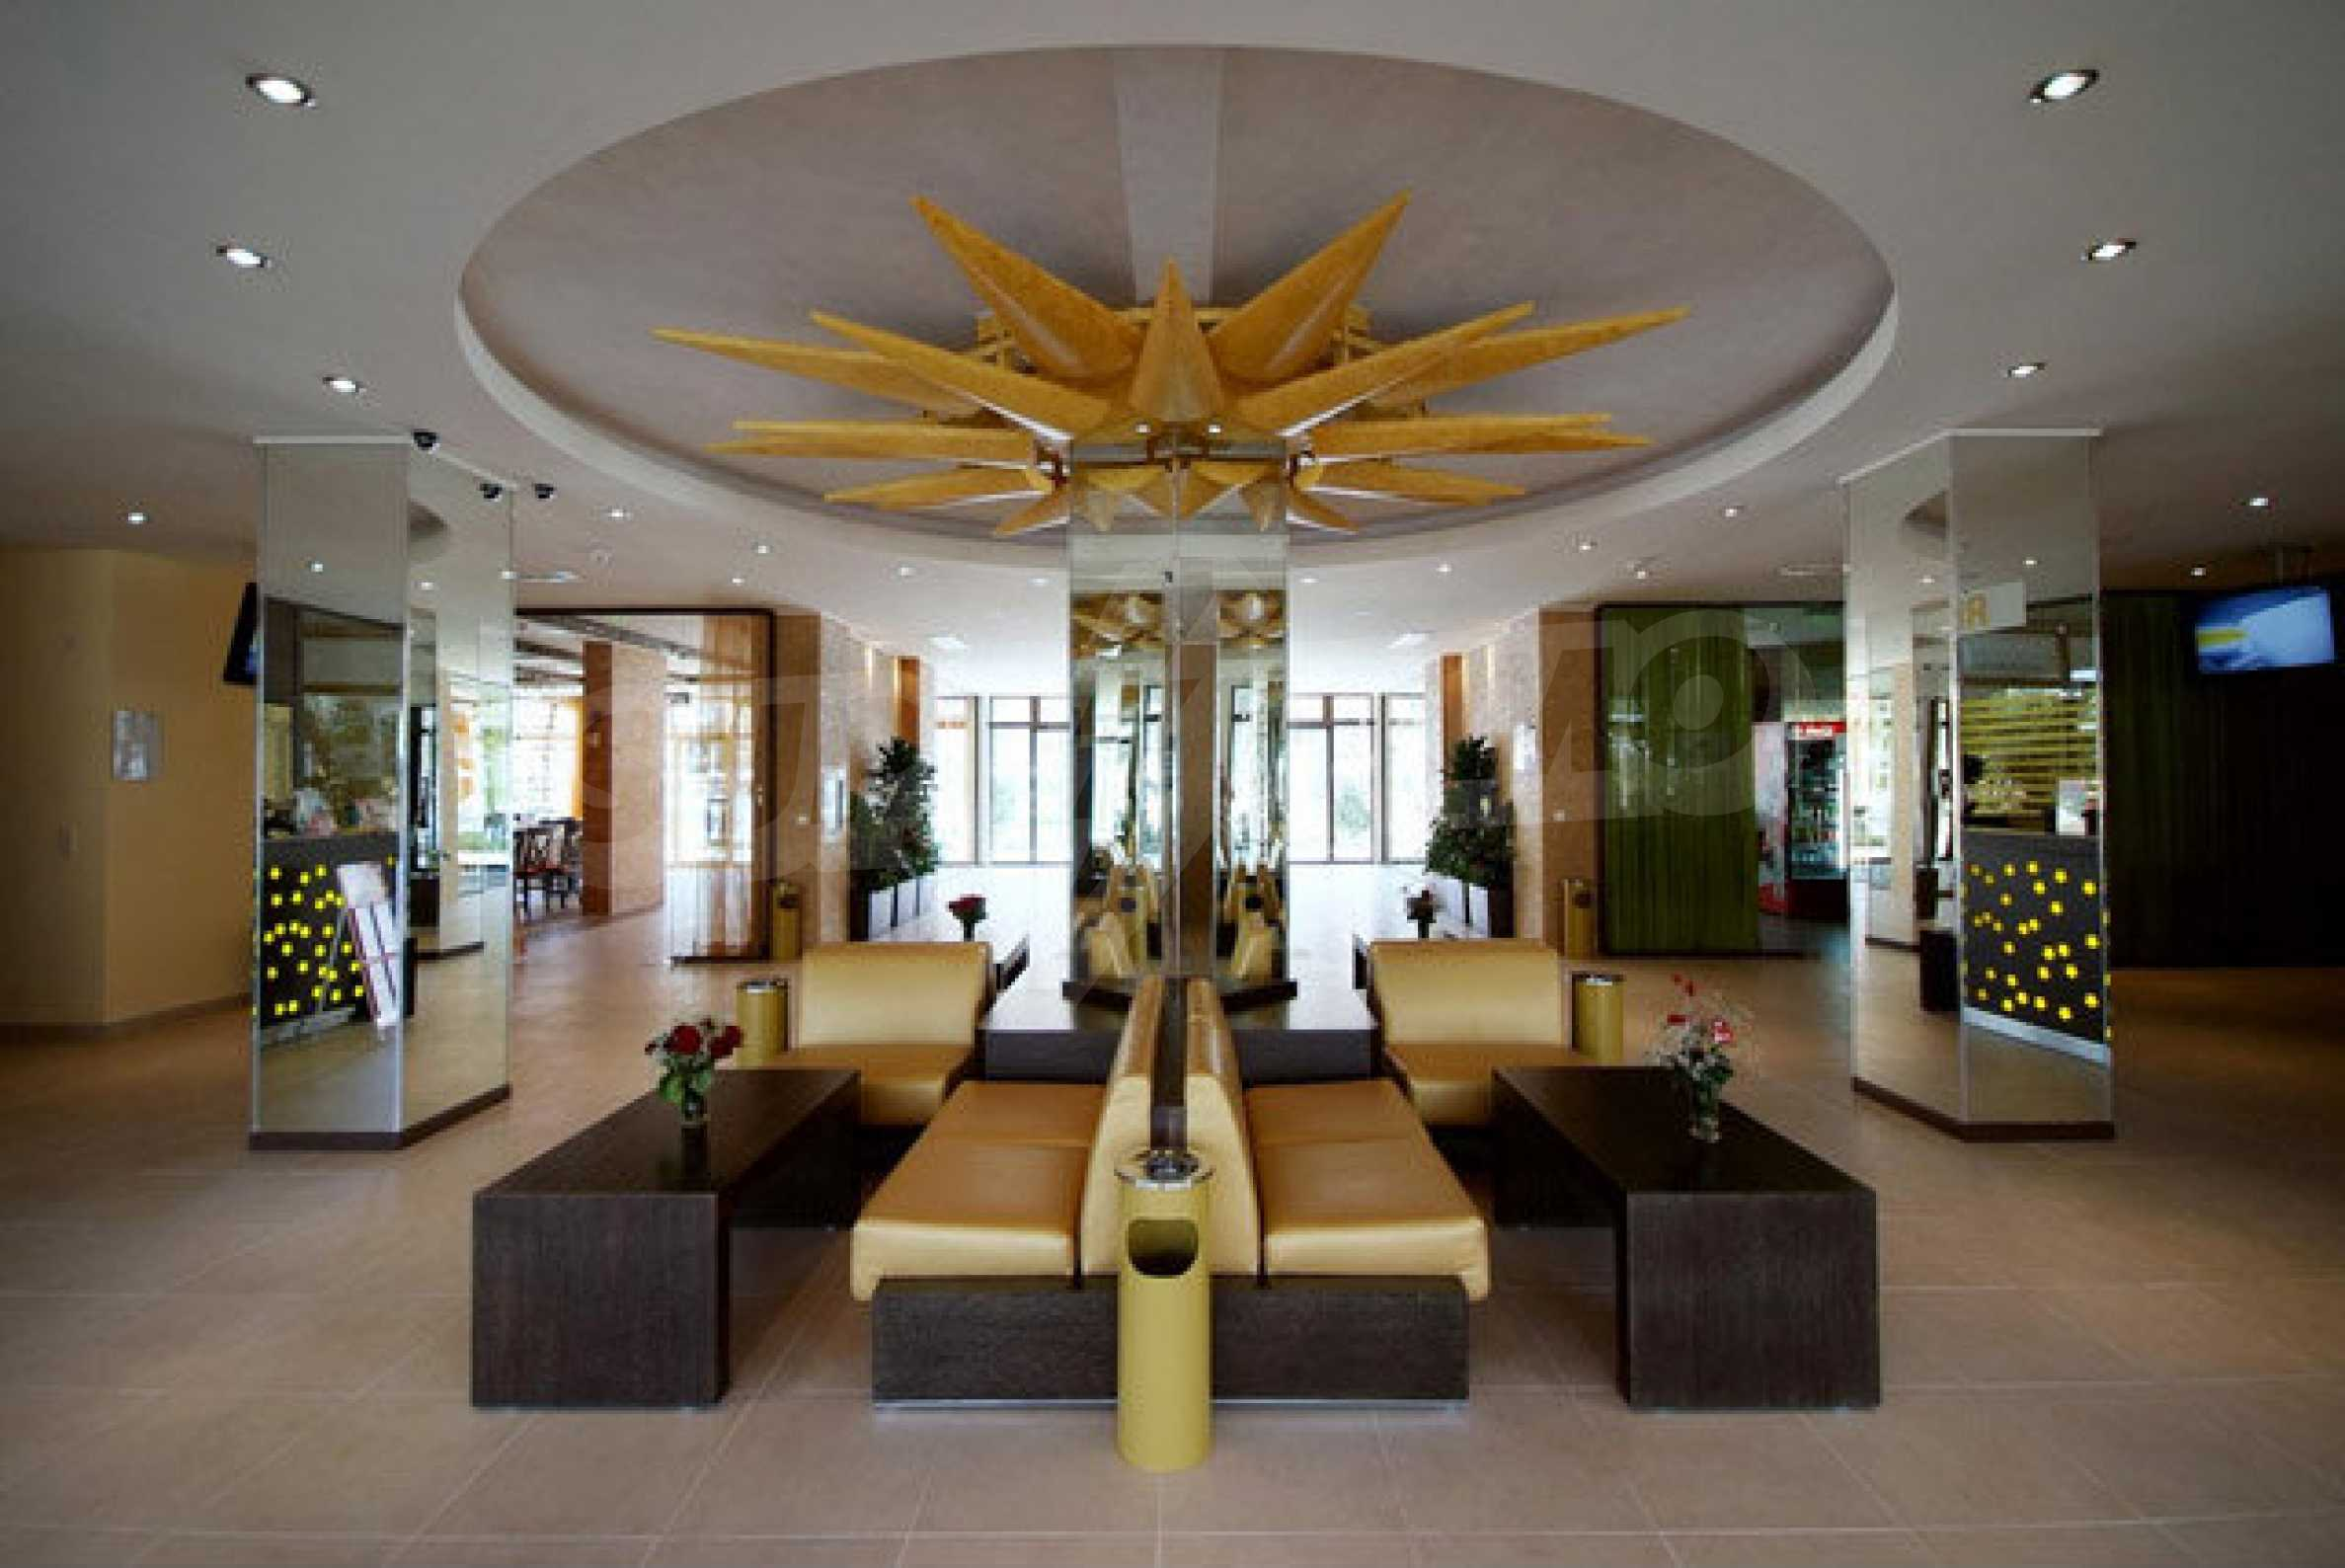 2-bedroom for sale in Royal Sun complex in Sunny Beach 3